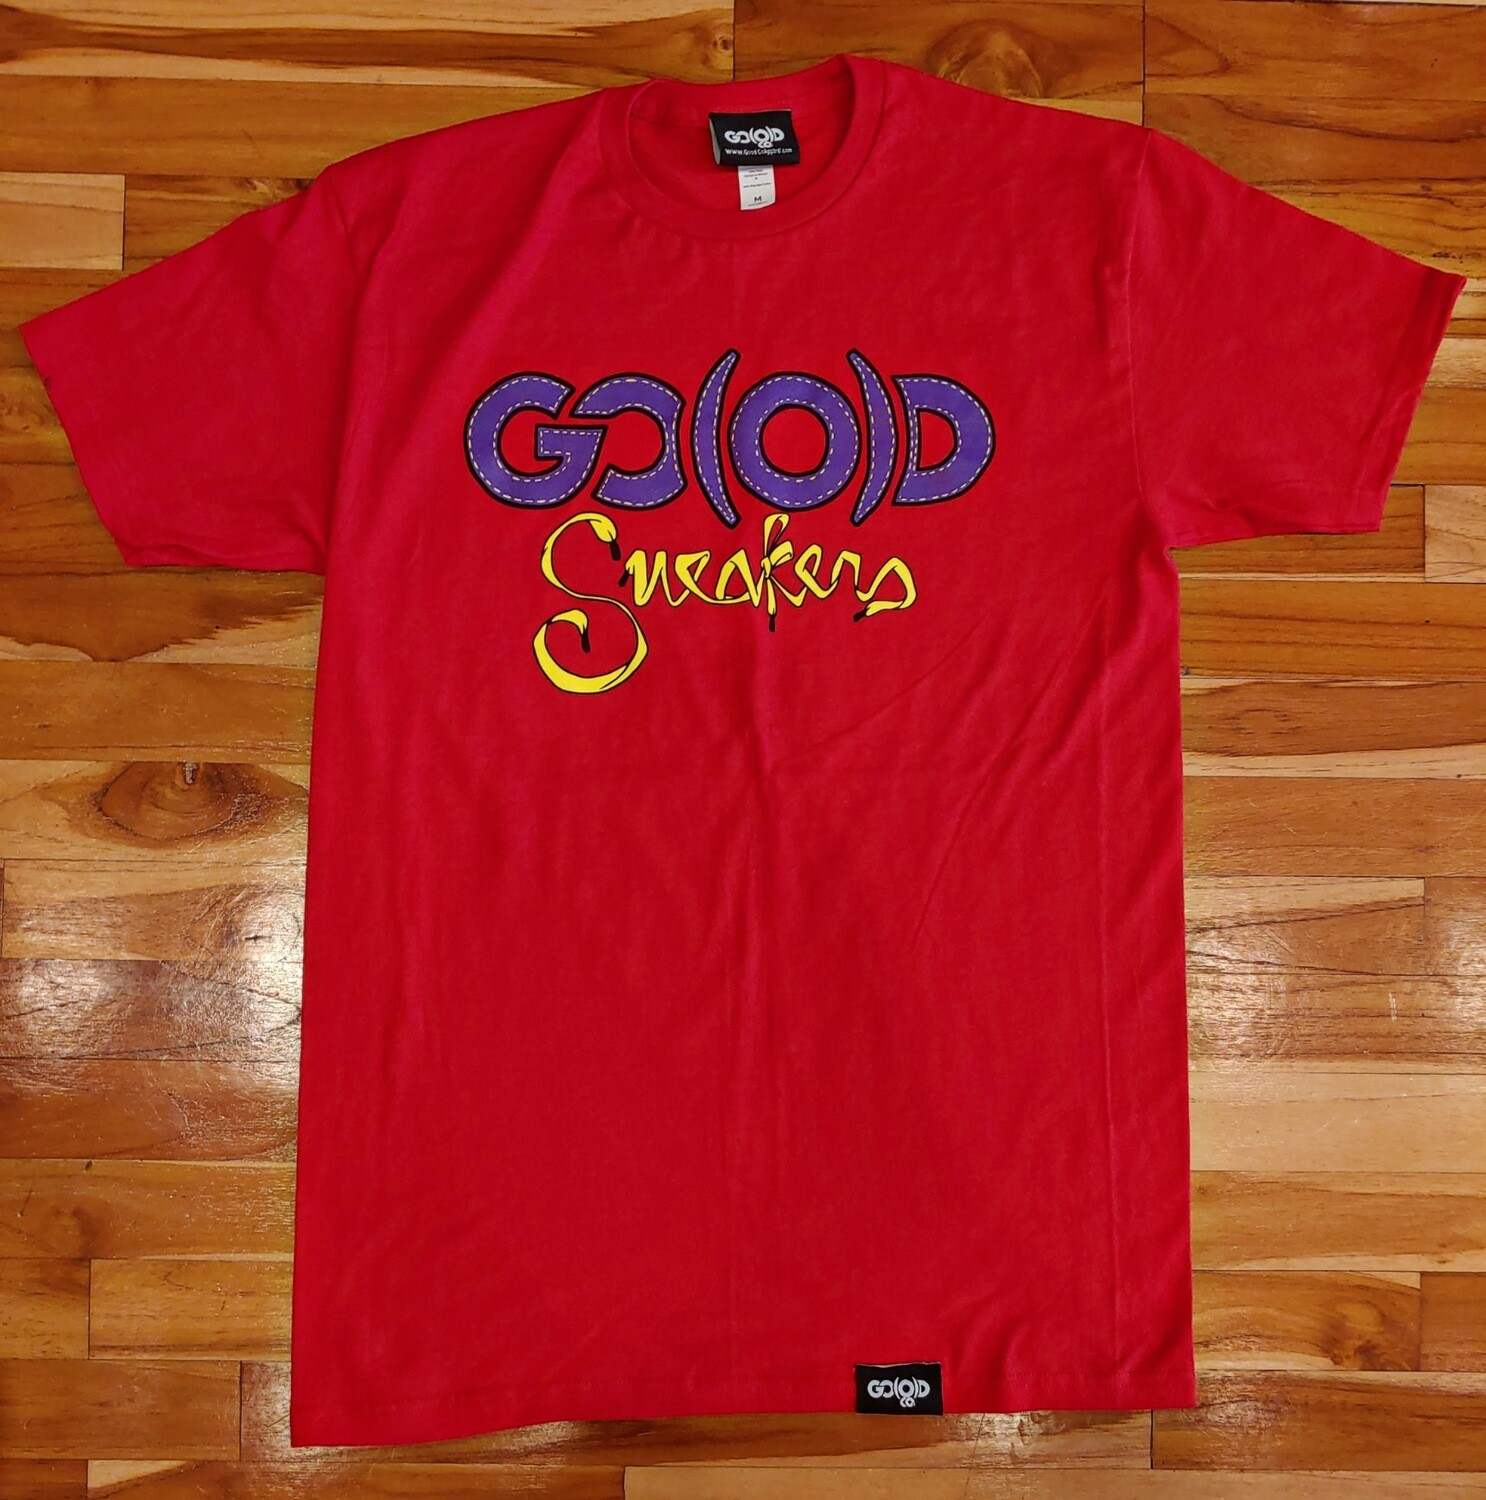 GO(O)D SNEAKERS TEE-red/purple/yellow